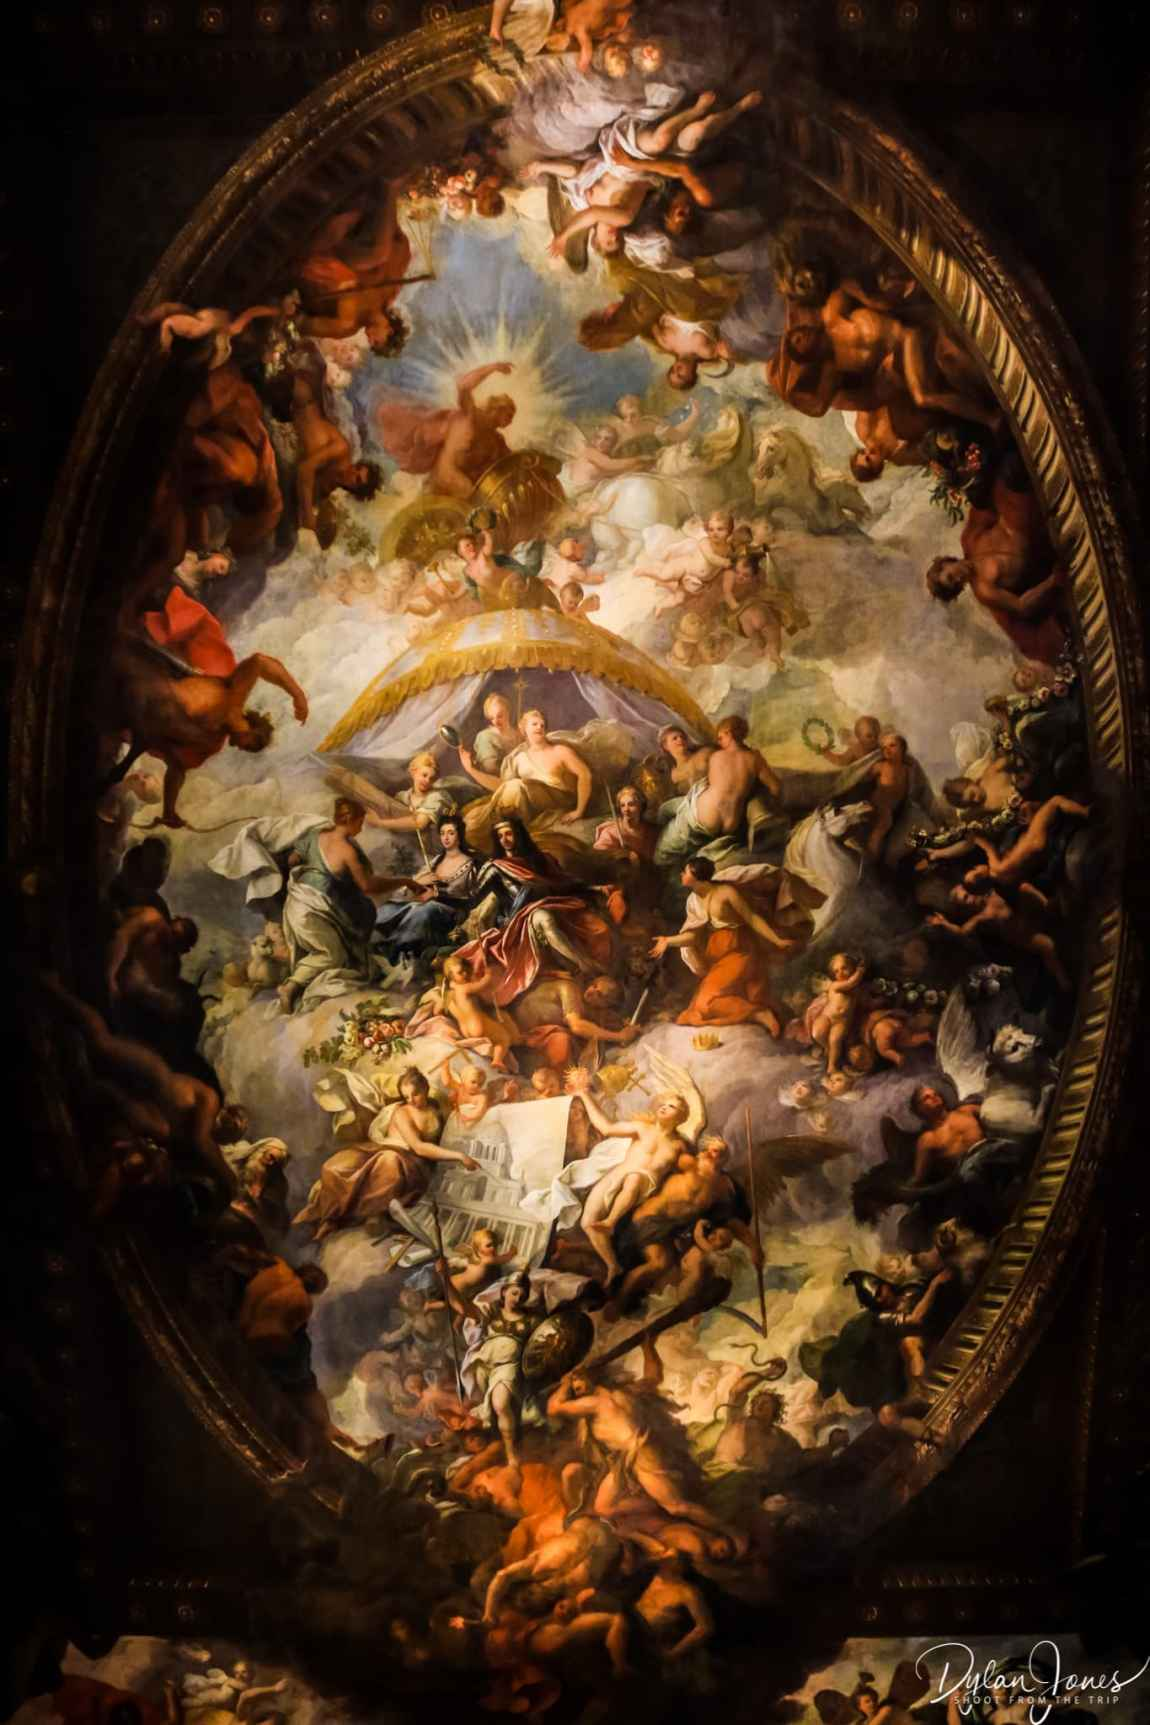 Ceiling fresco at the Painted Hall